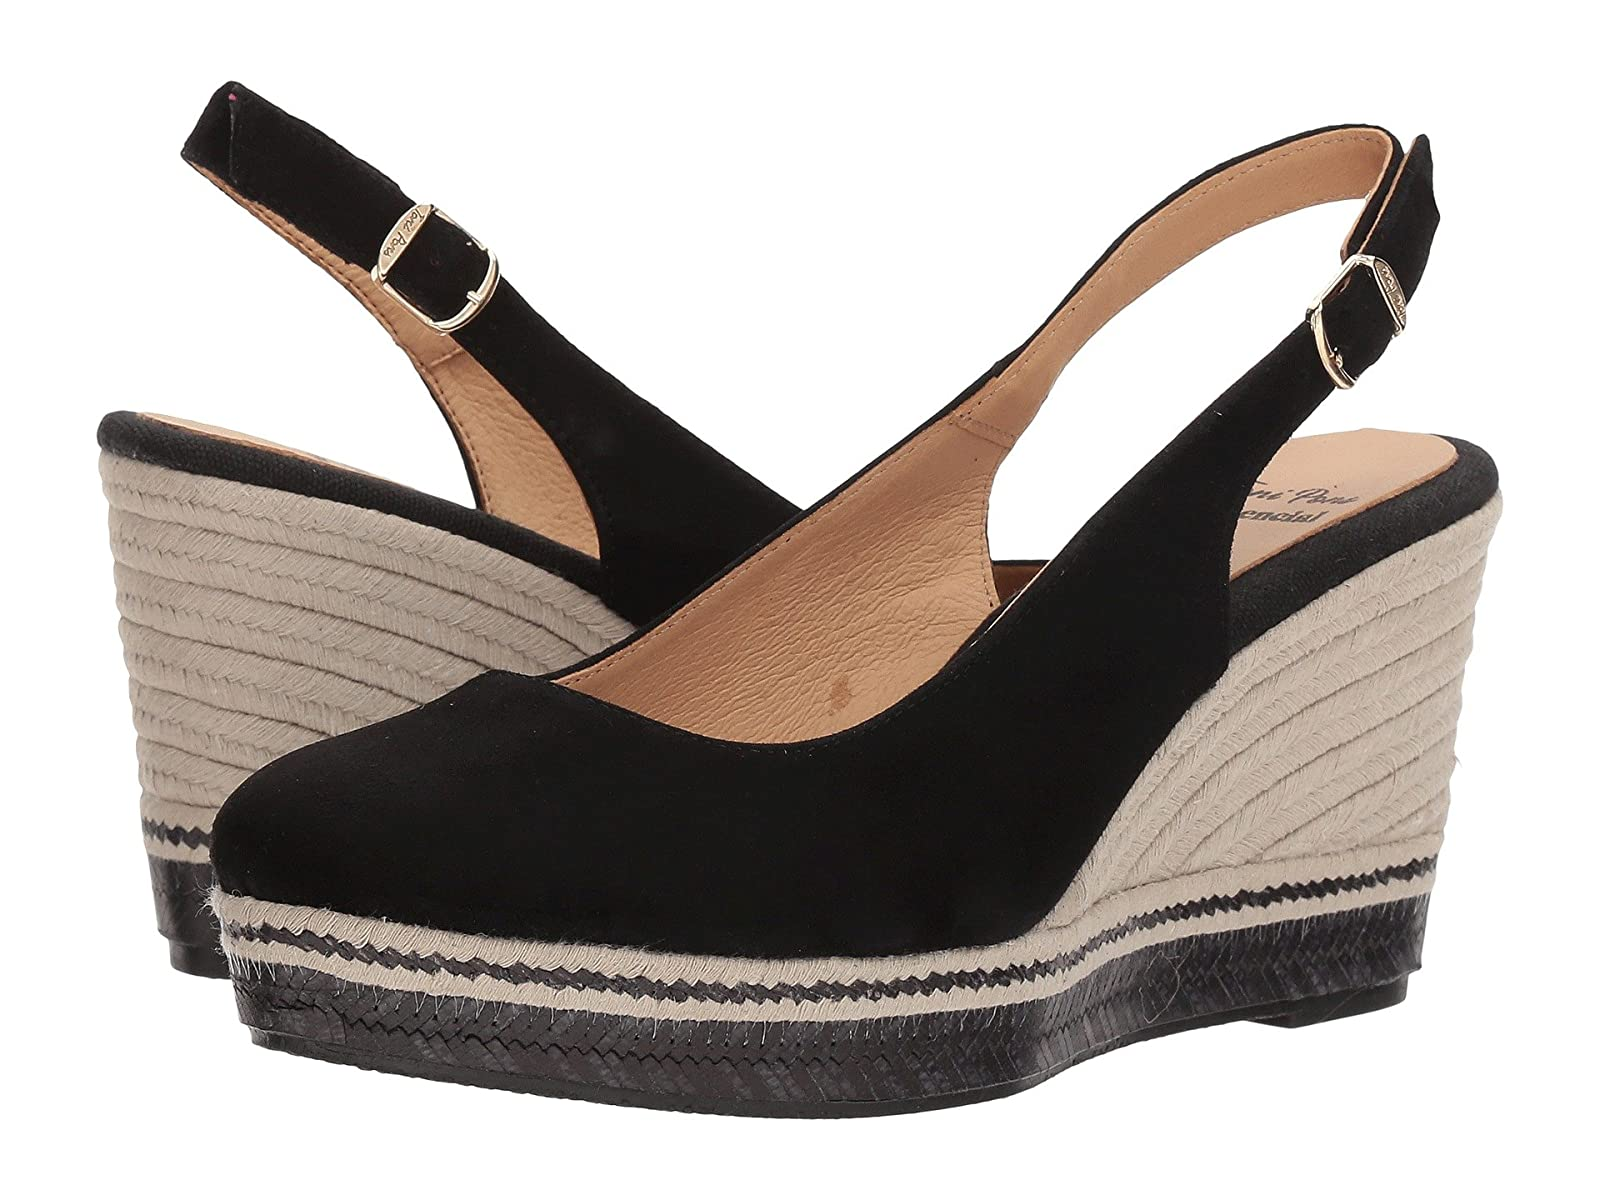 Toni Pons Aster-AAtmospheric grades have affordable shoes